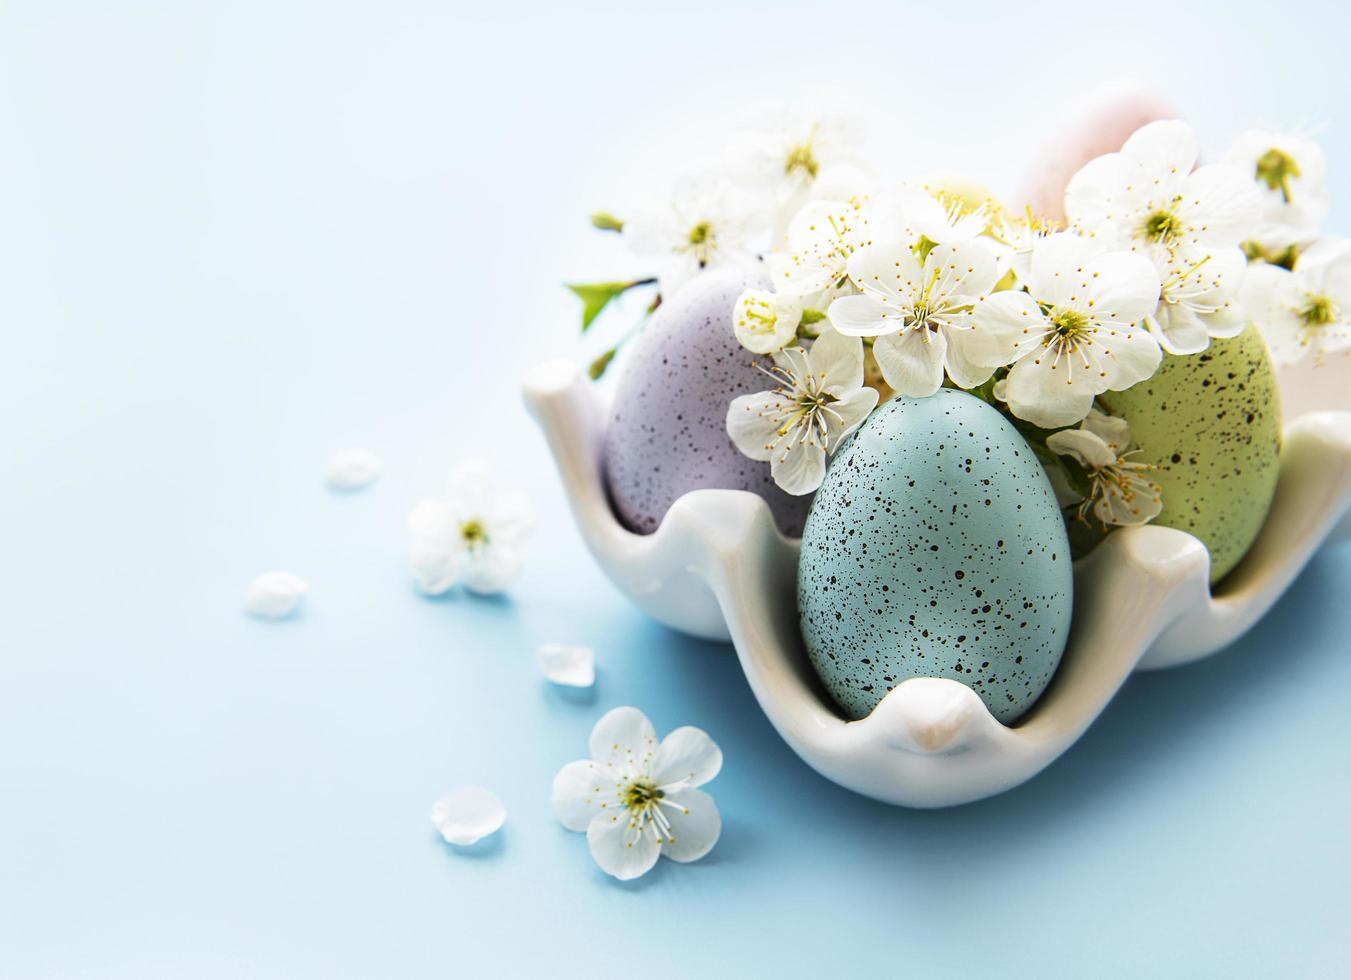 Easter eggs in egg tray and spring blossom photo